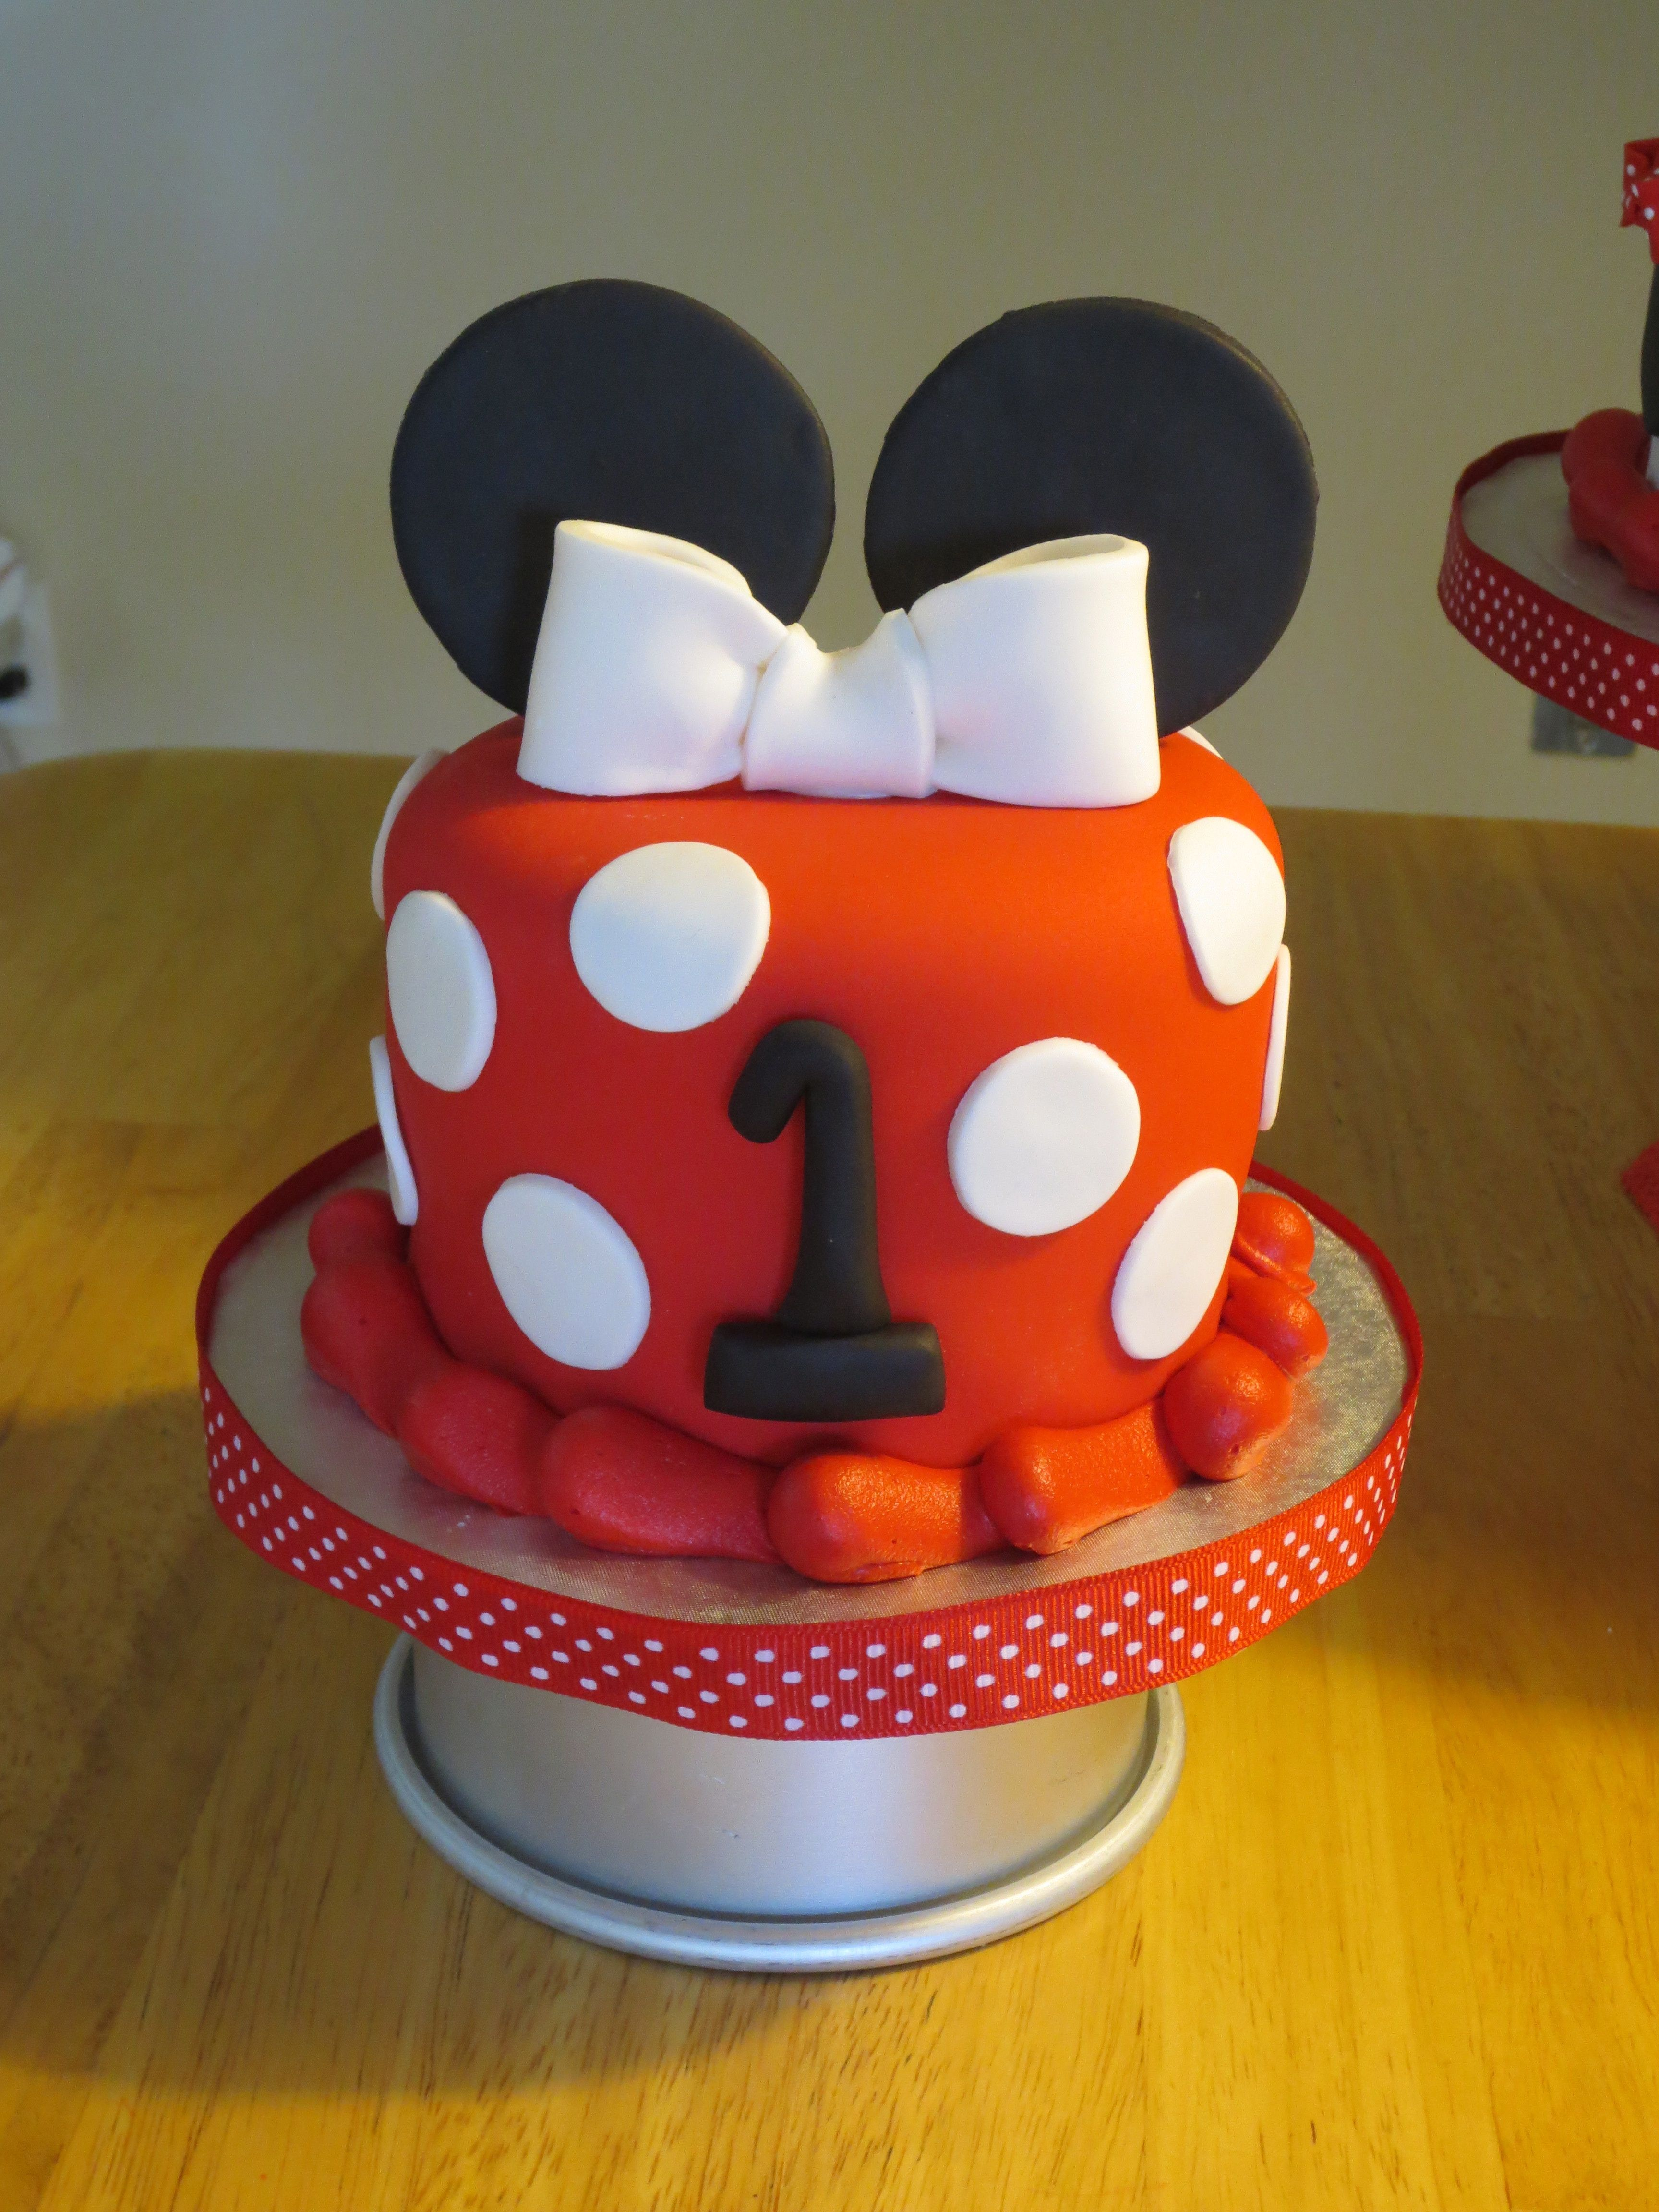 Minnie Mouse Cake and Smash Cake Whipped frosting Smash cakes and